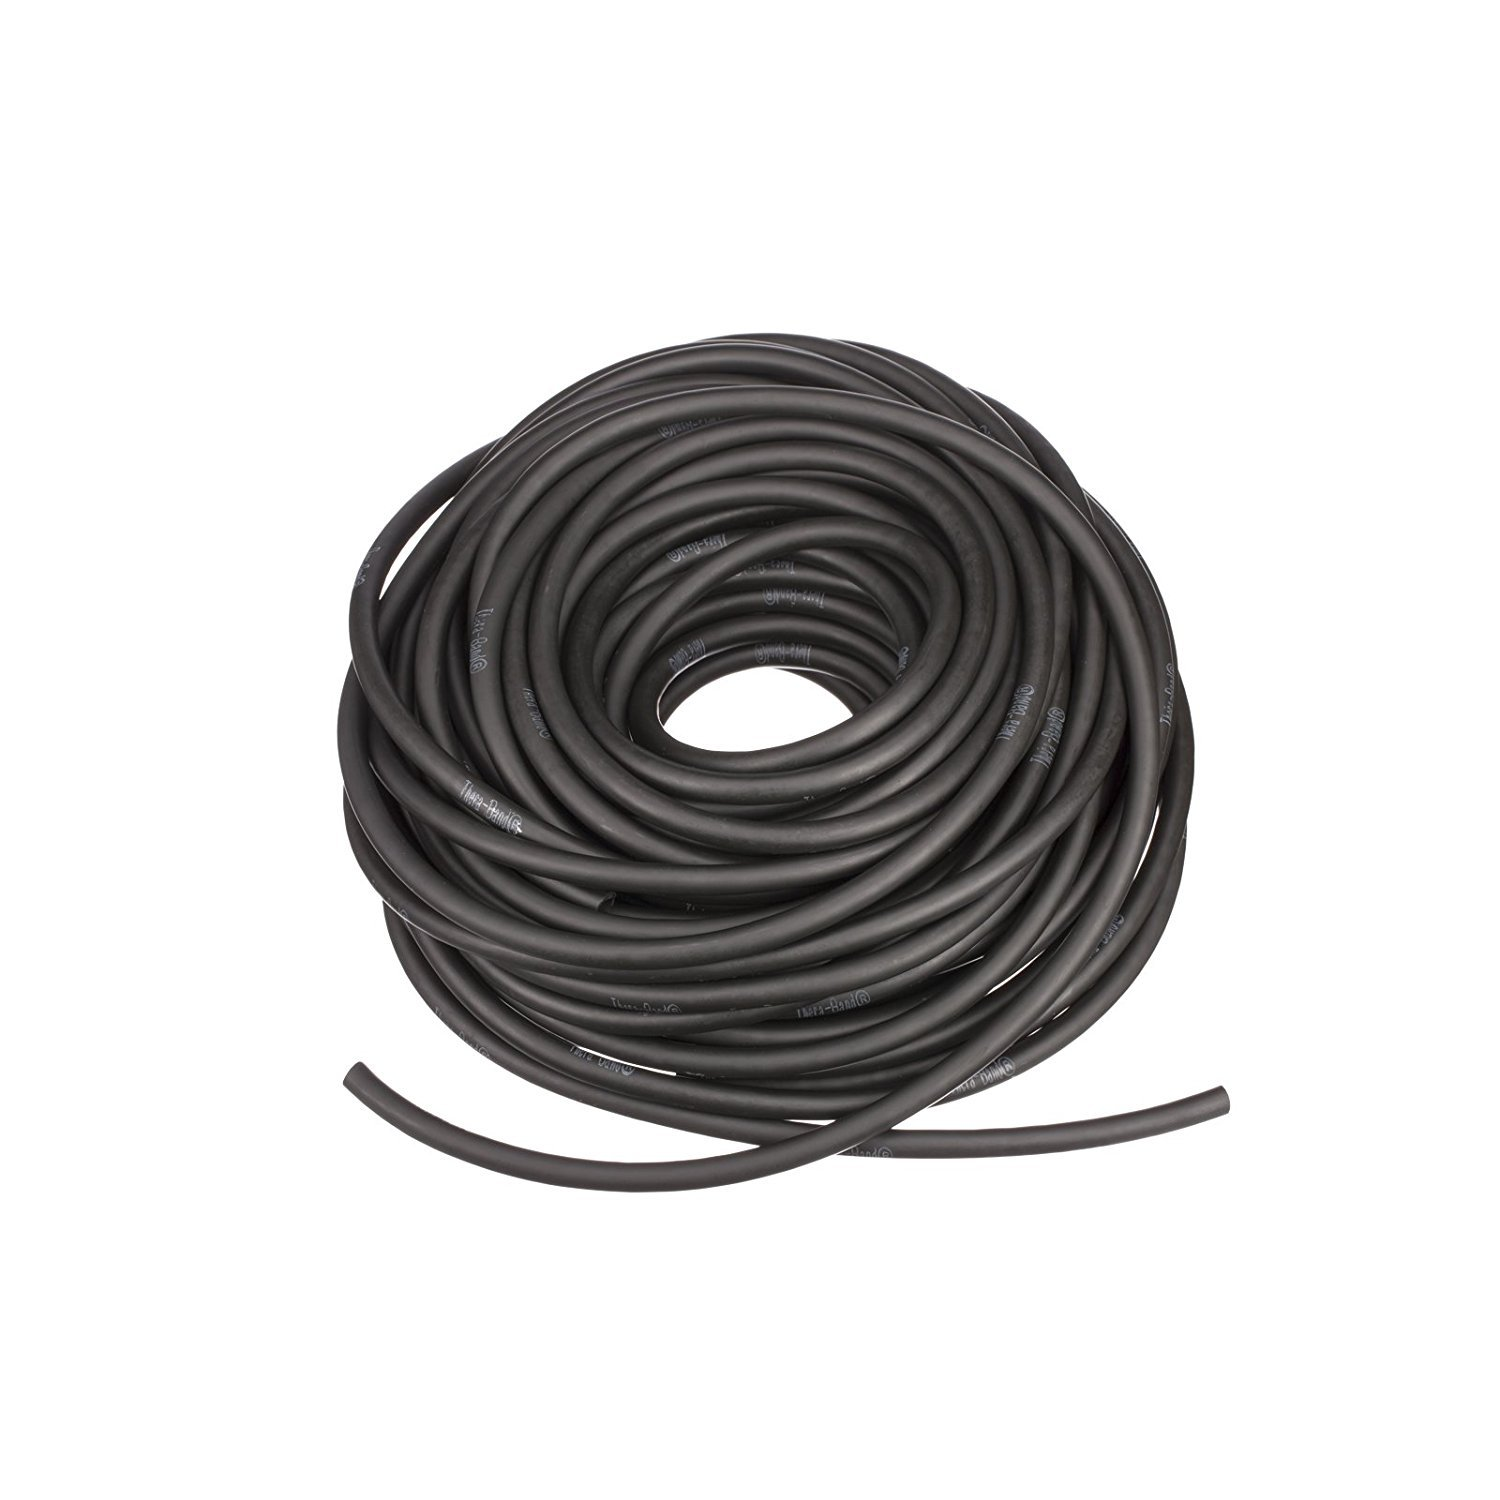 TheraBand Special Heavy Weight Resistance Tubing 30.5 m Black